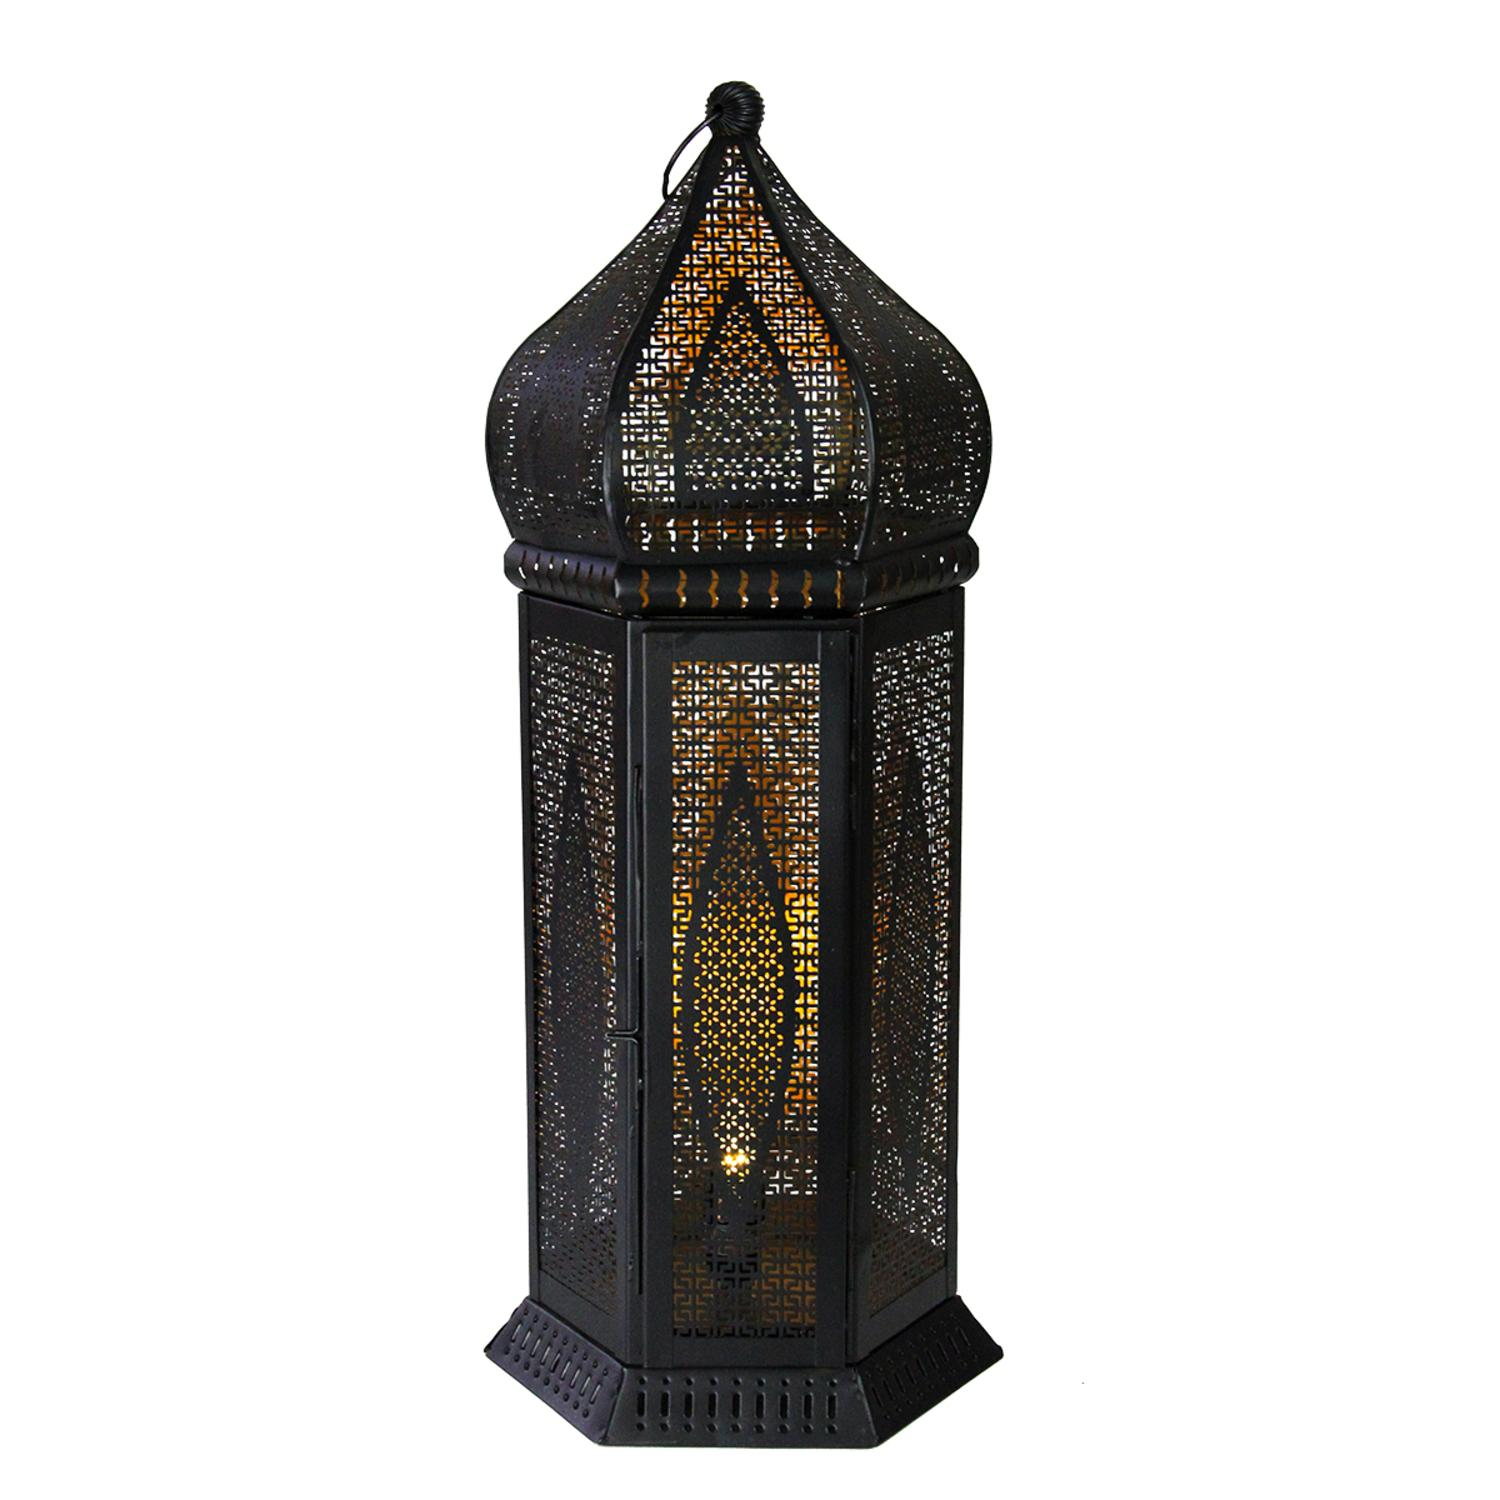 ''21.25'''' Black and Gold Moroccan Style Cut-Out Table Lantern LAMP''